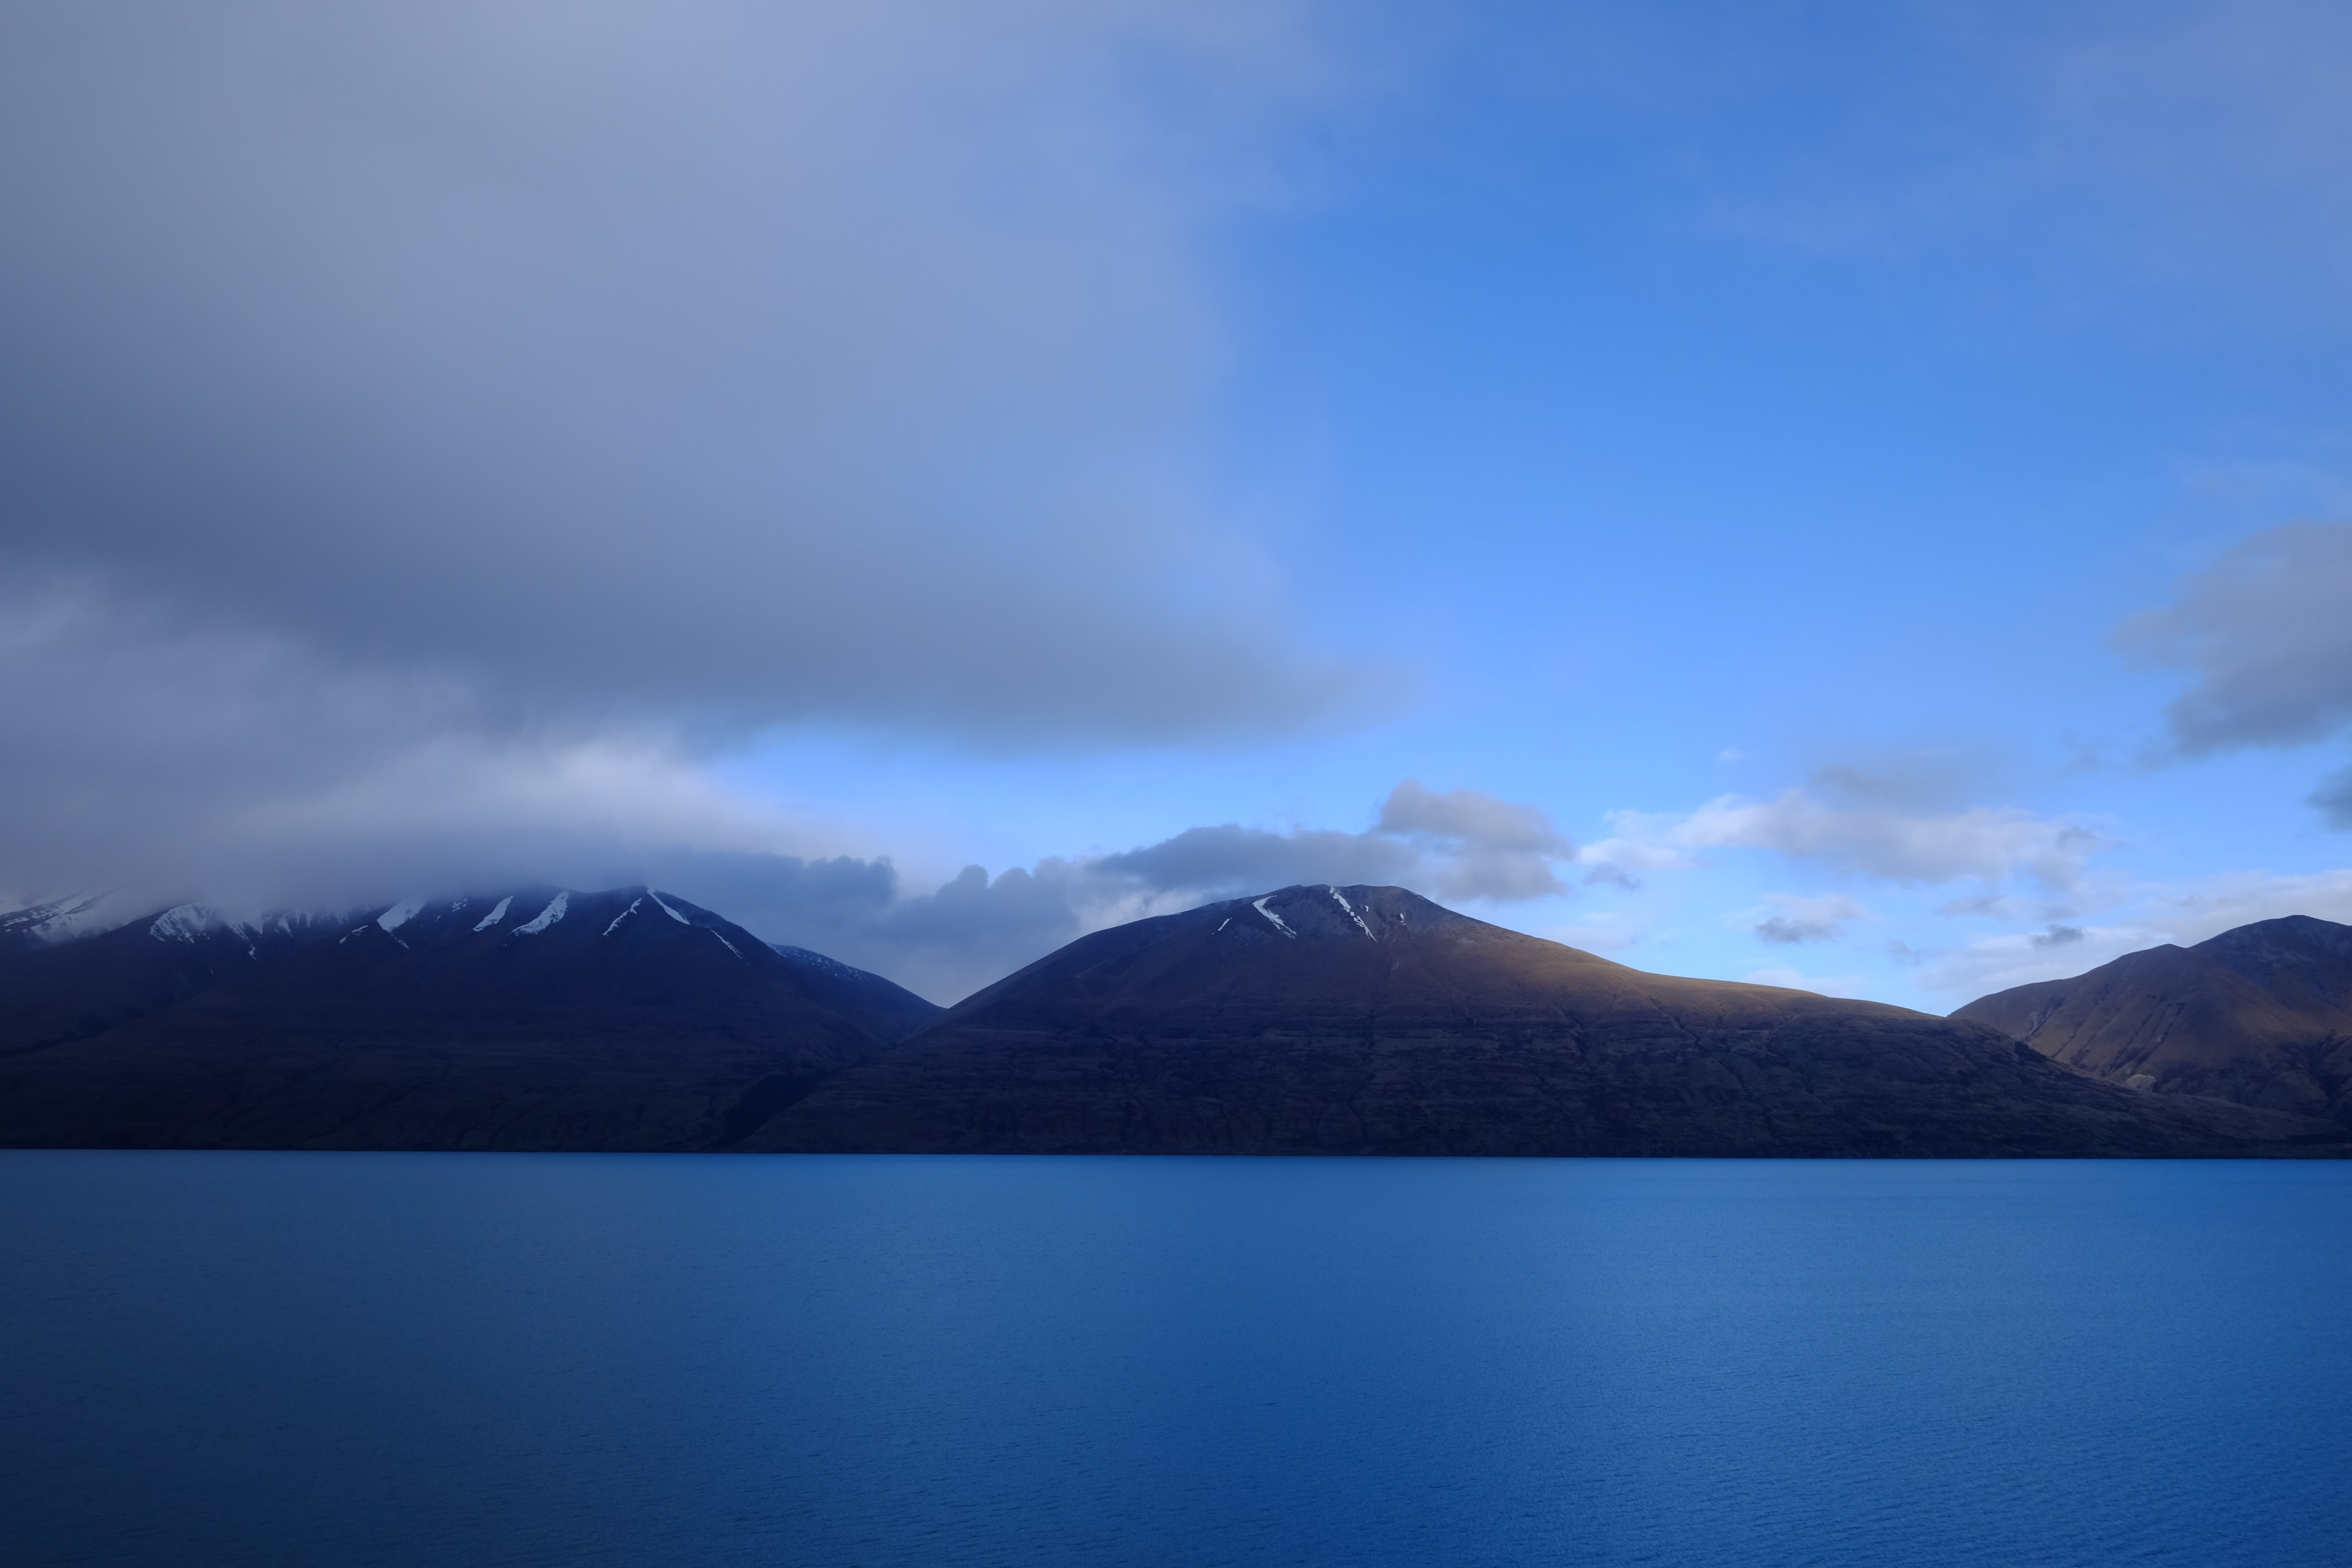 The calm surface of Lake Ohau by a mountain range under clouds